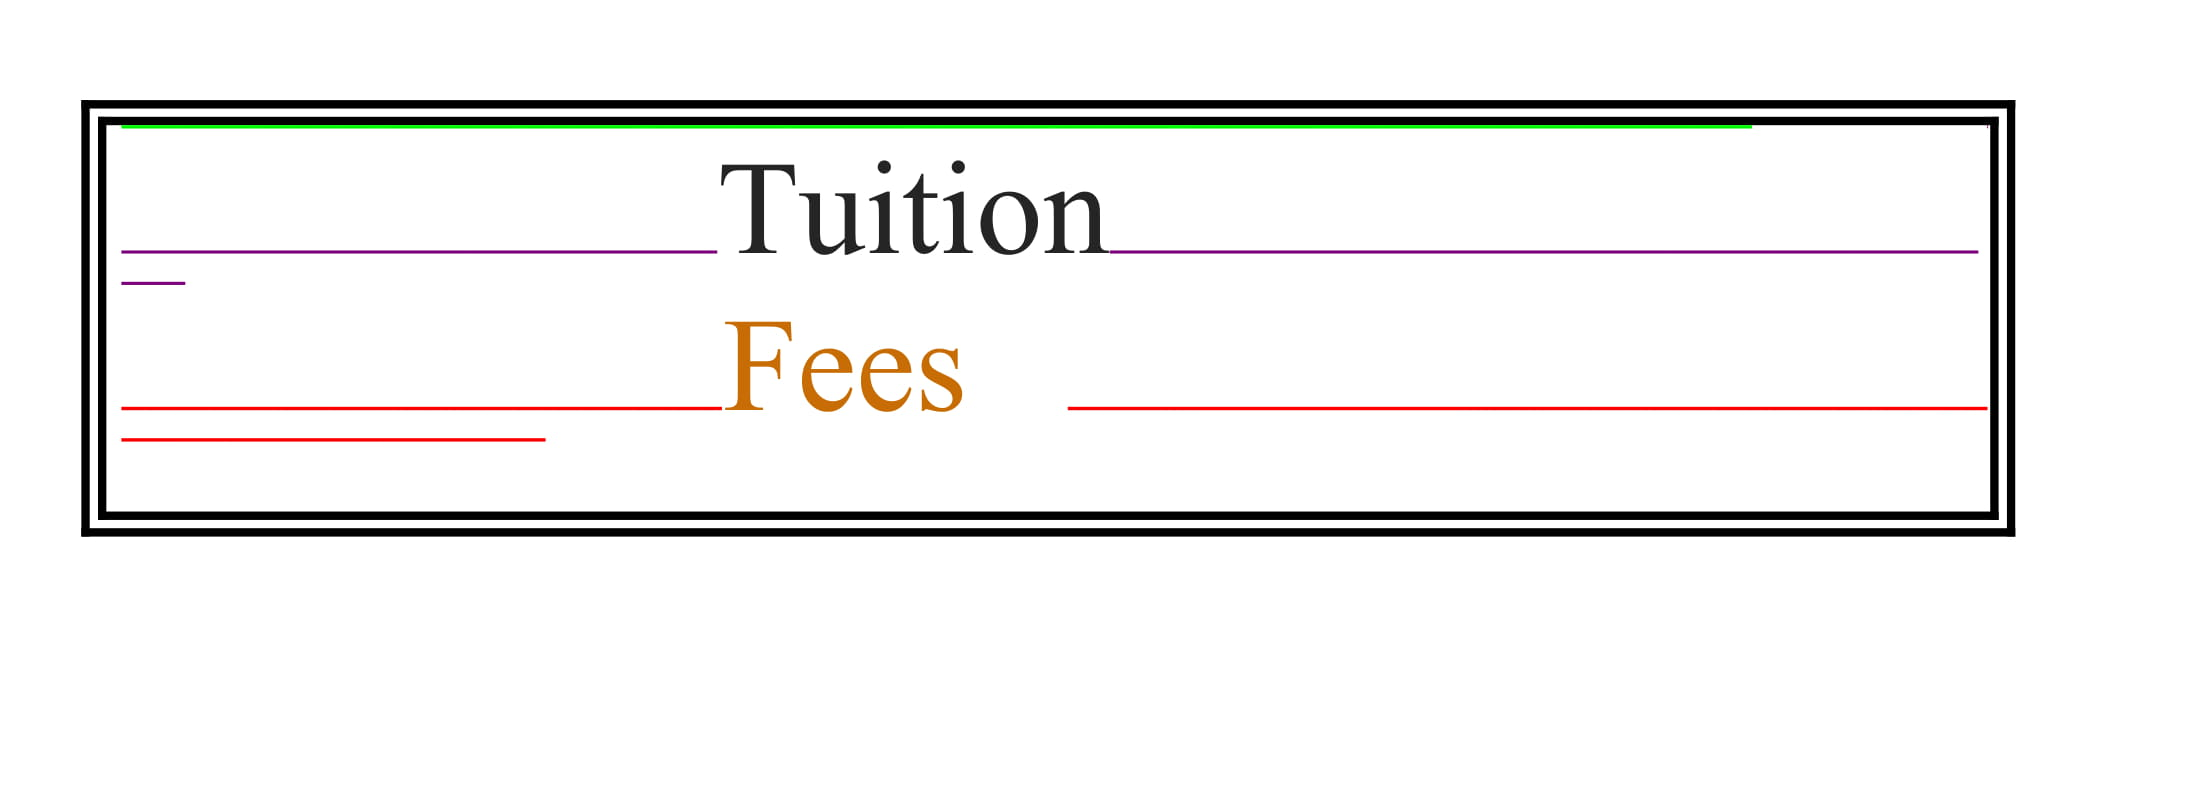 University of Cambridge Tuition Fees